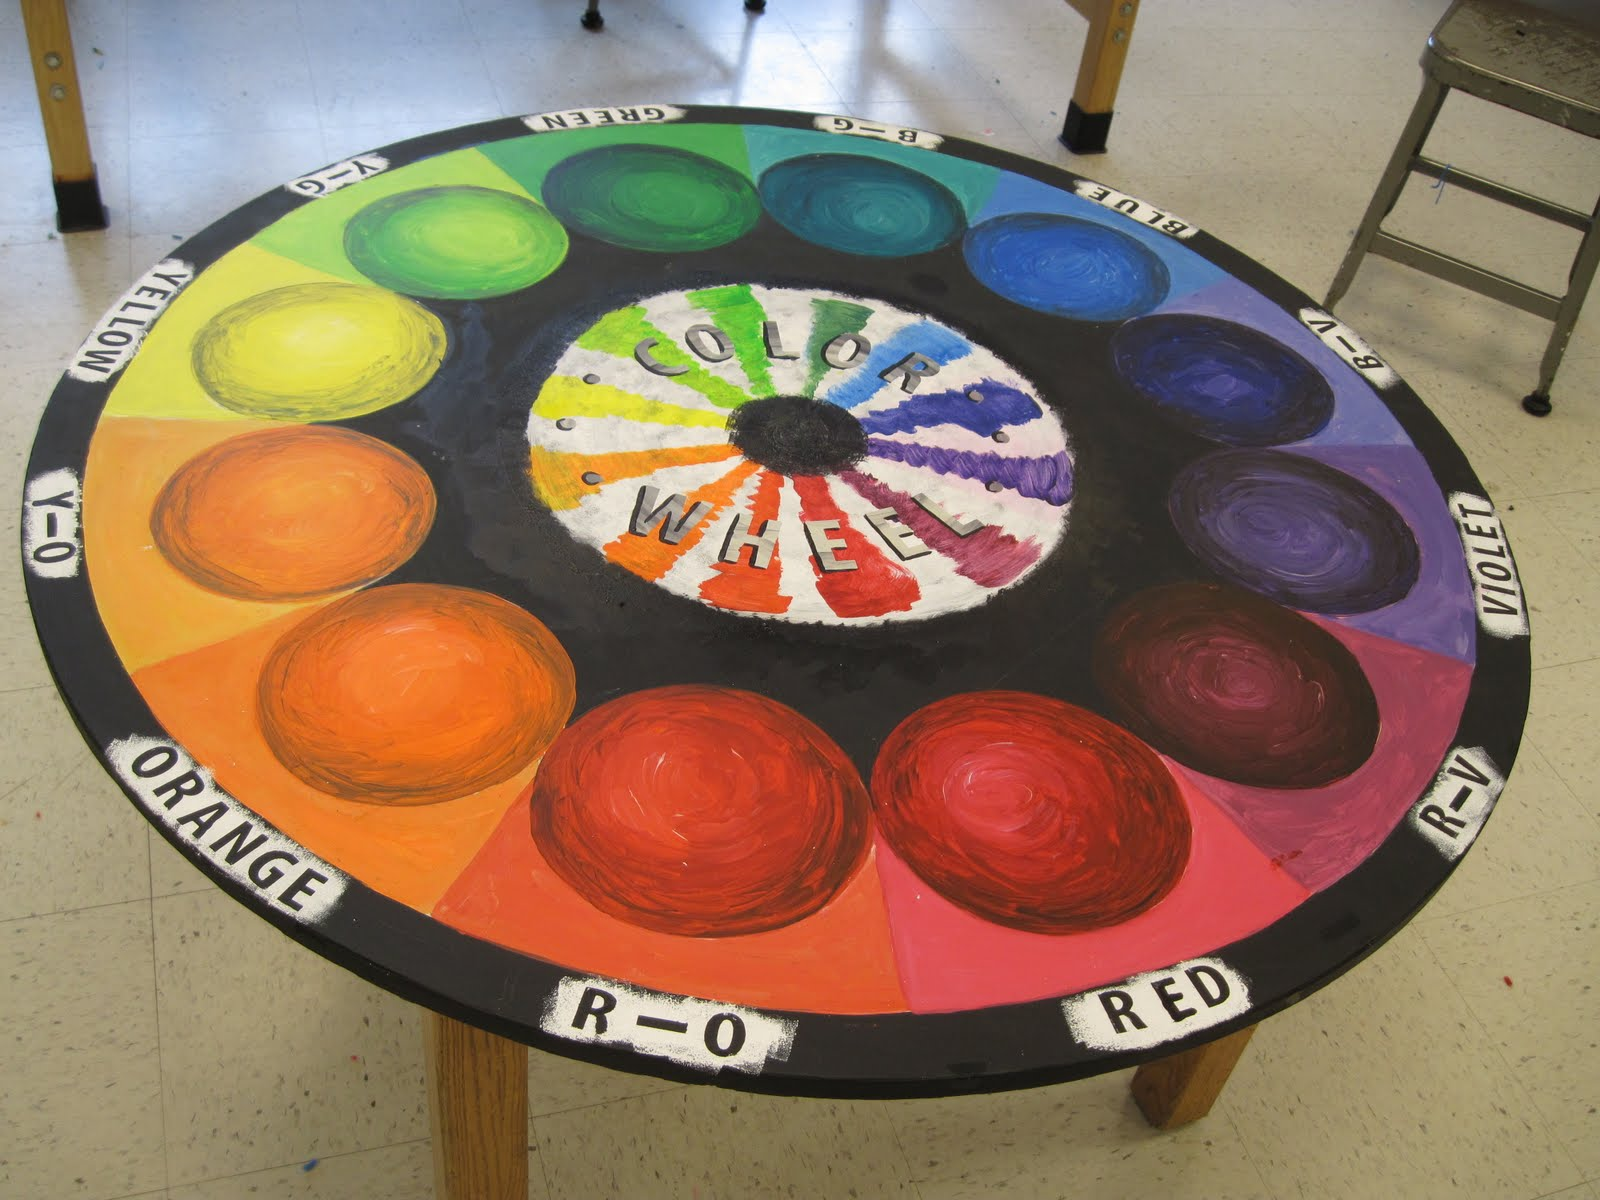 ... Views Of My Former Classroom. Hereu0027s The Color Wheel Table, Made From A  Table I Rescued A Few Years Back. The New Art Teacher Is Taking Good Care  Of It!